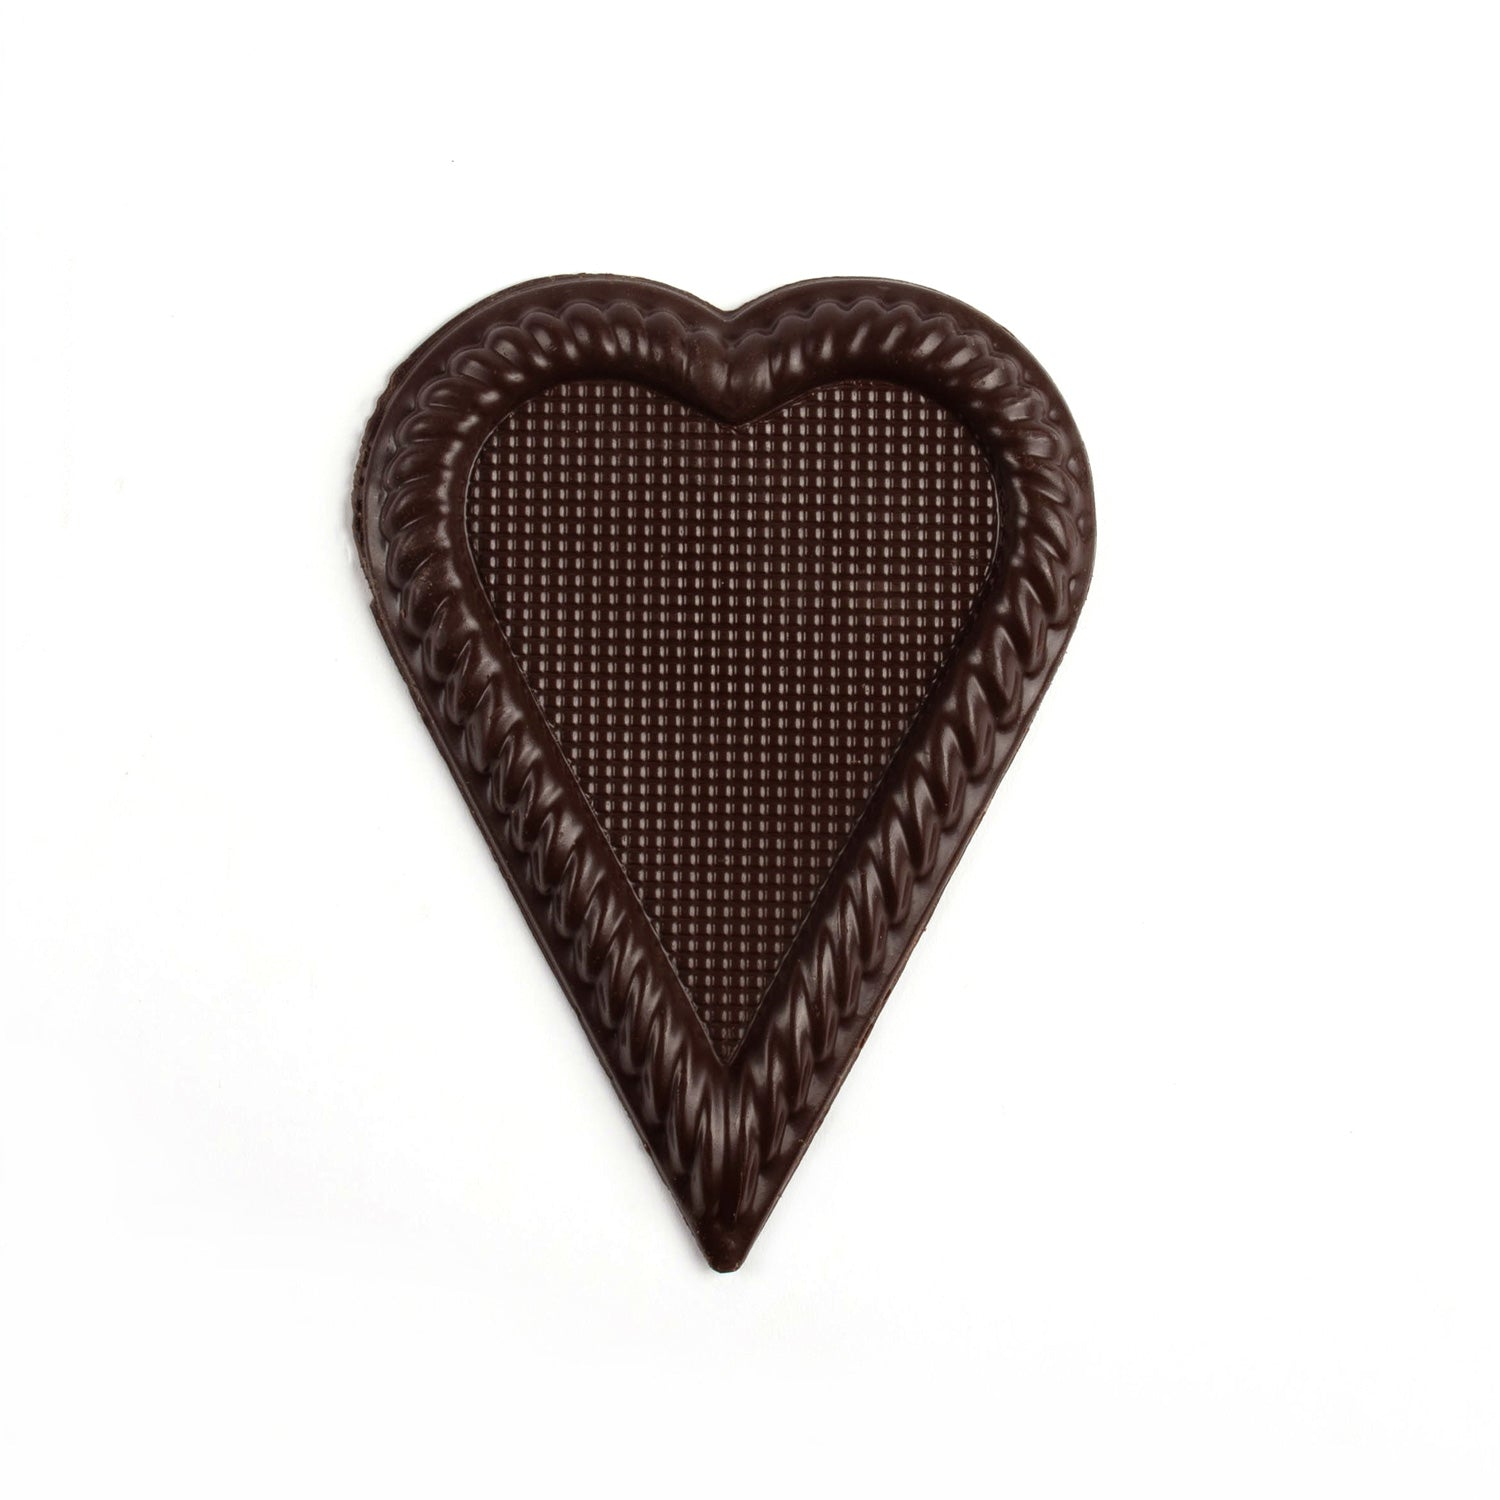 Image of large dark chocolate heart